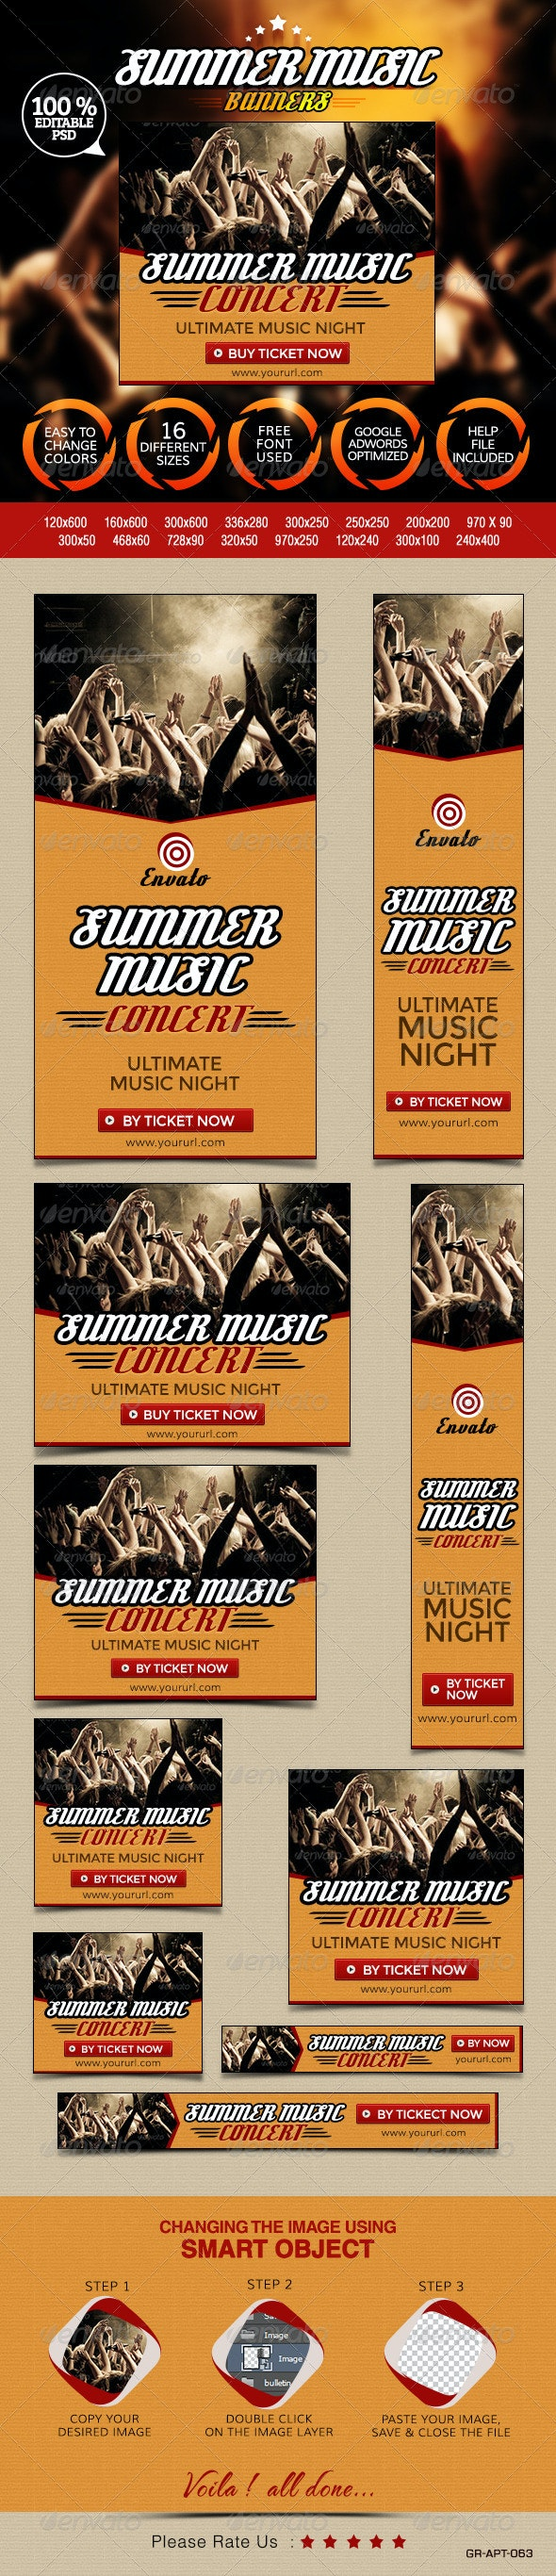 Concert Banners - Banners & Ads Web Elements